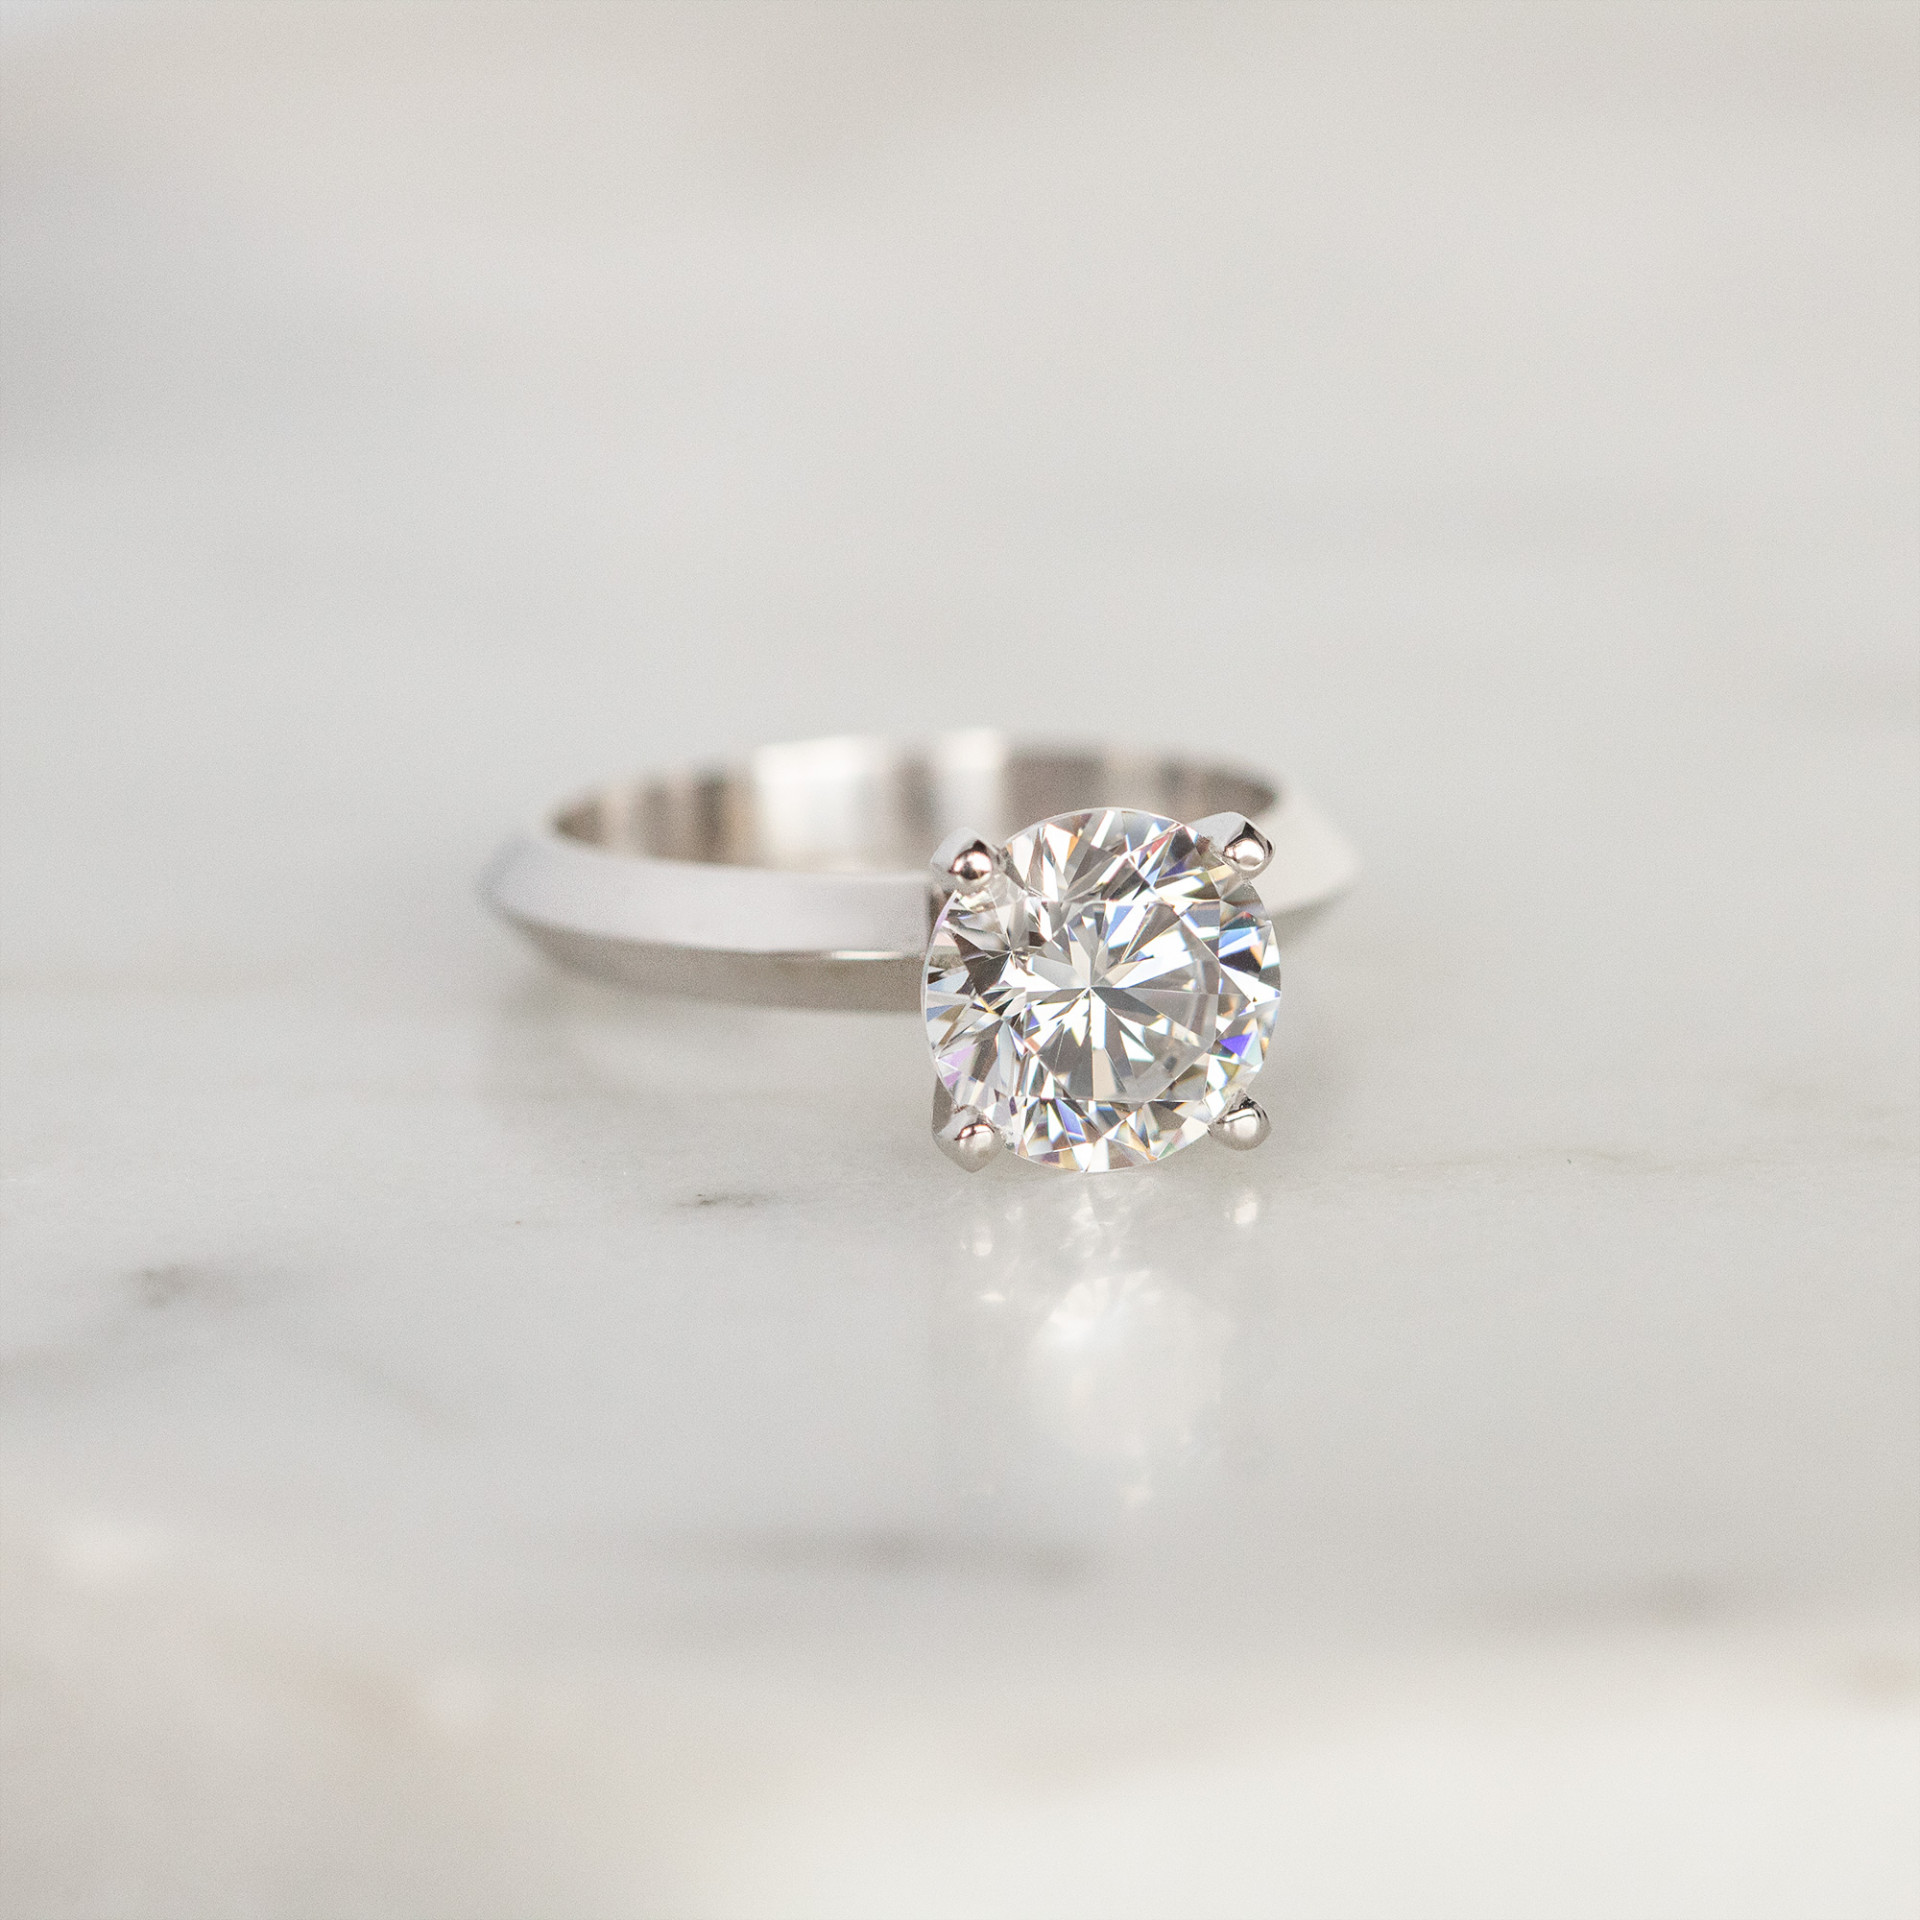 Engagement Rings Solitare Tiffany Style Knife Edge 4 Prong